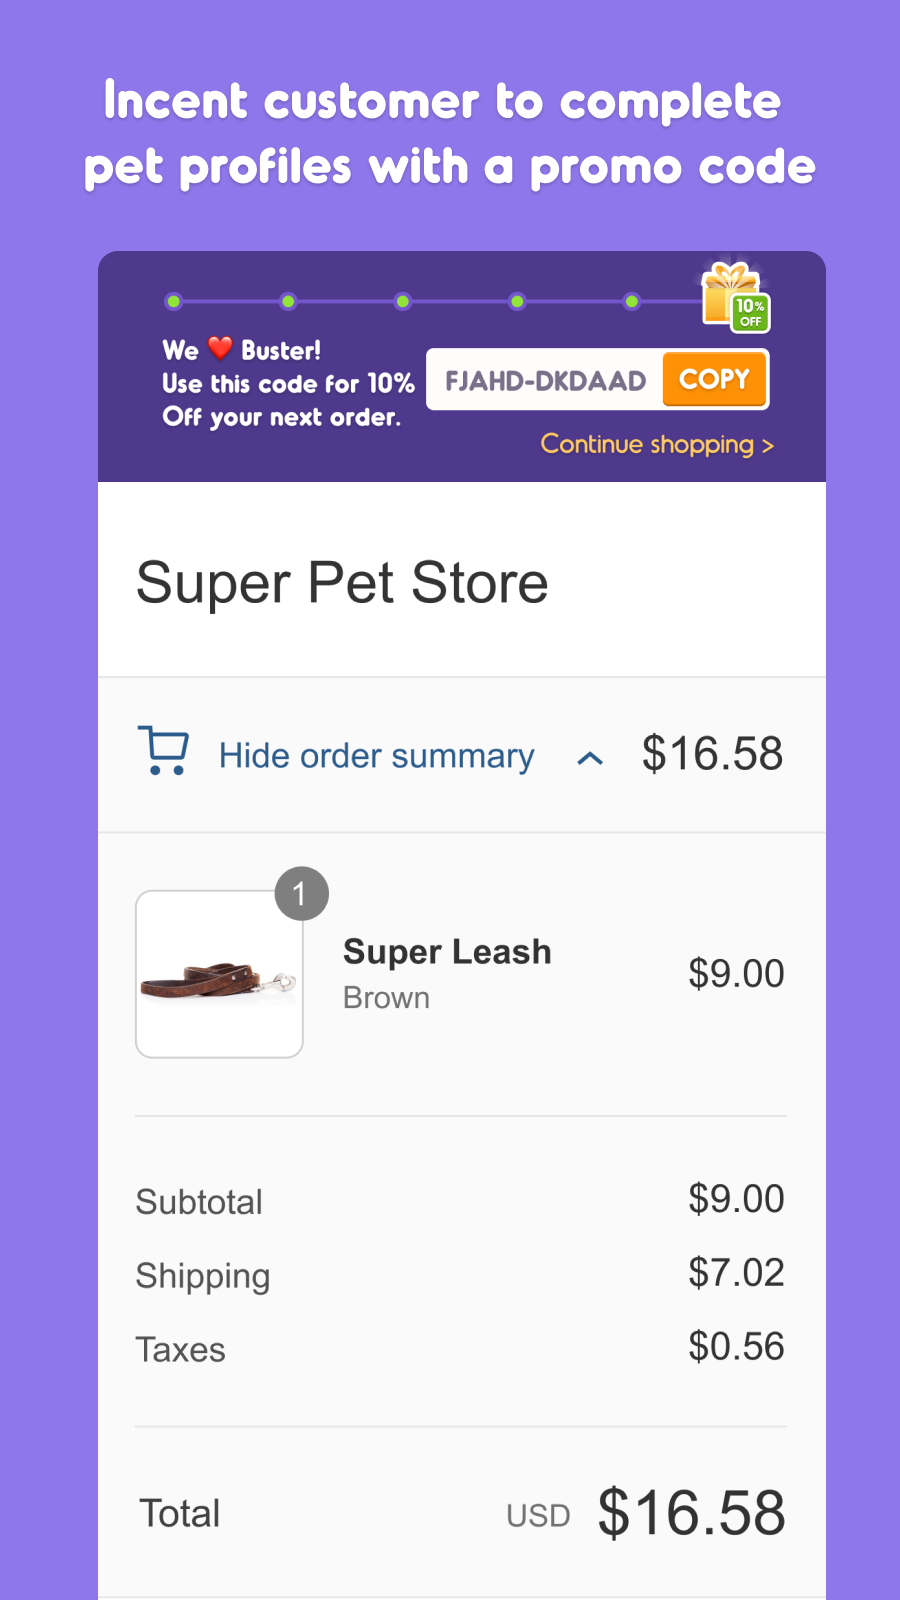 Incent customers to complete pet profiles with a promo code